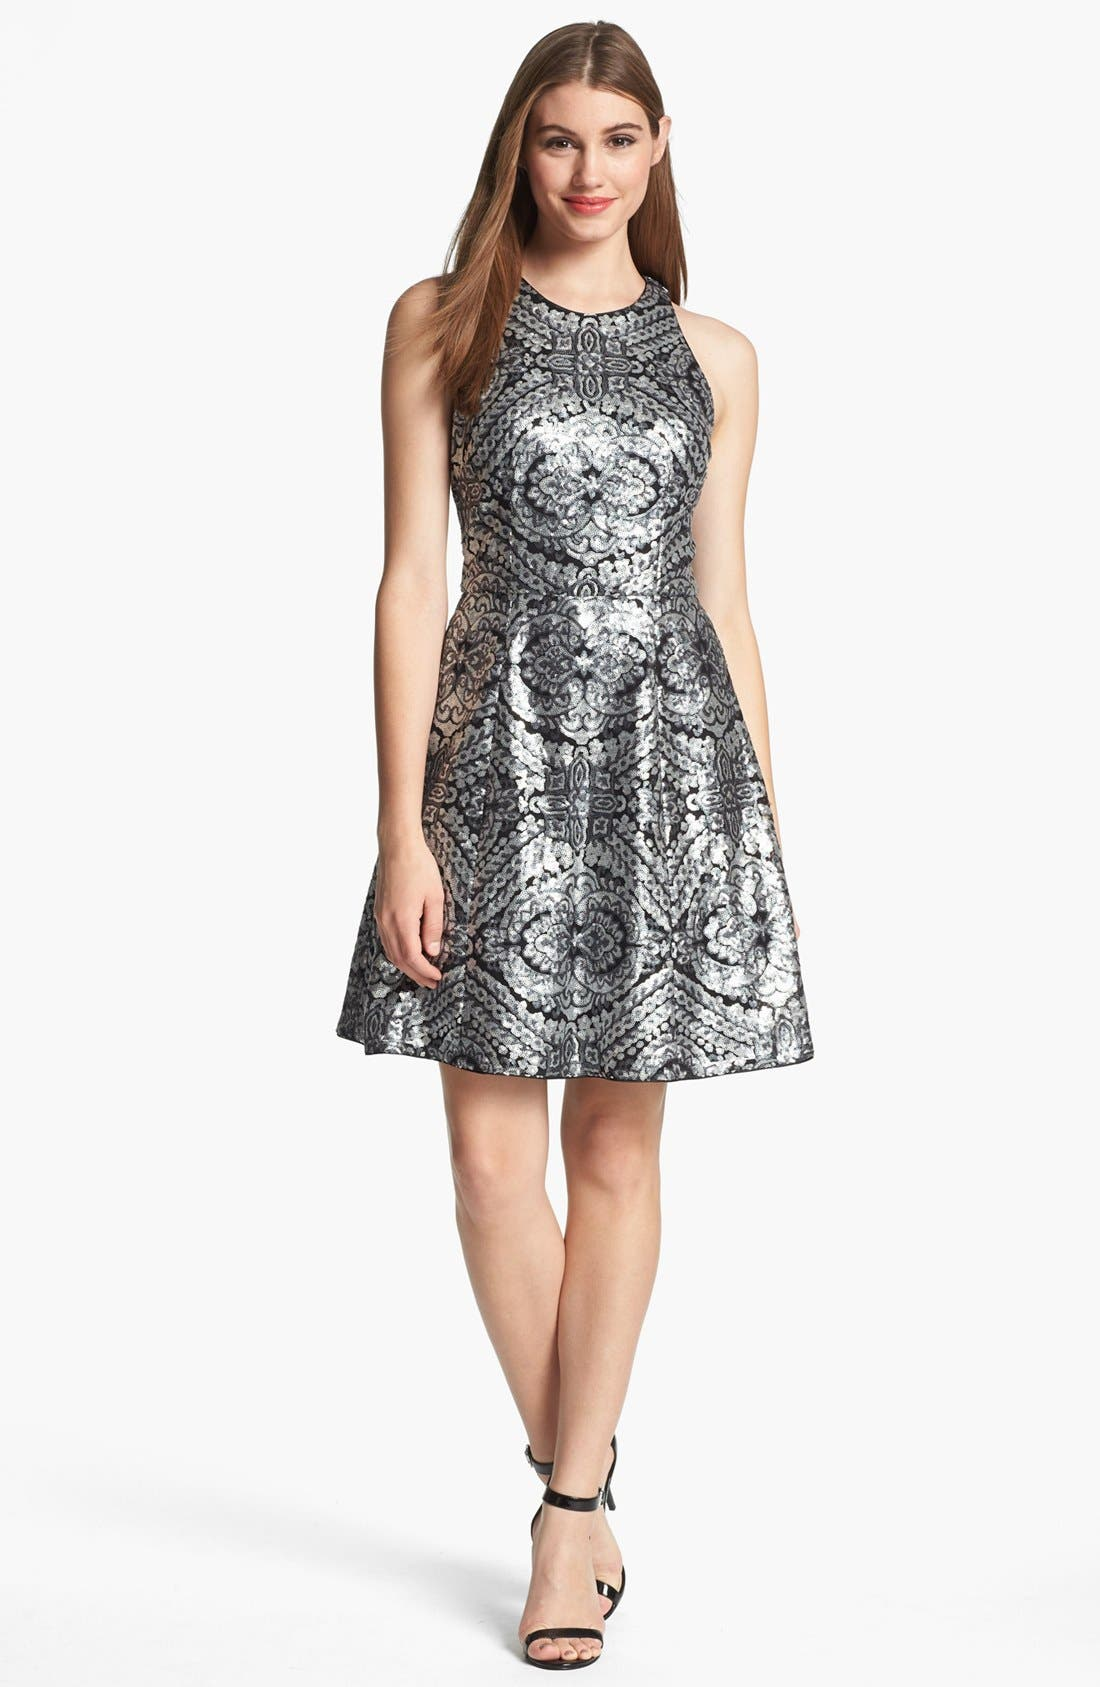 Main Image - Adrianna Papell Racerback Sequin Dress